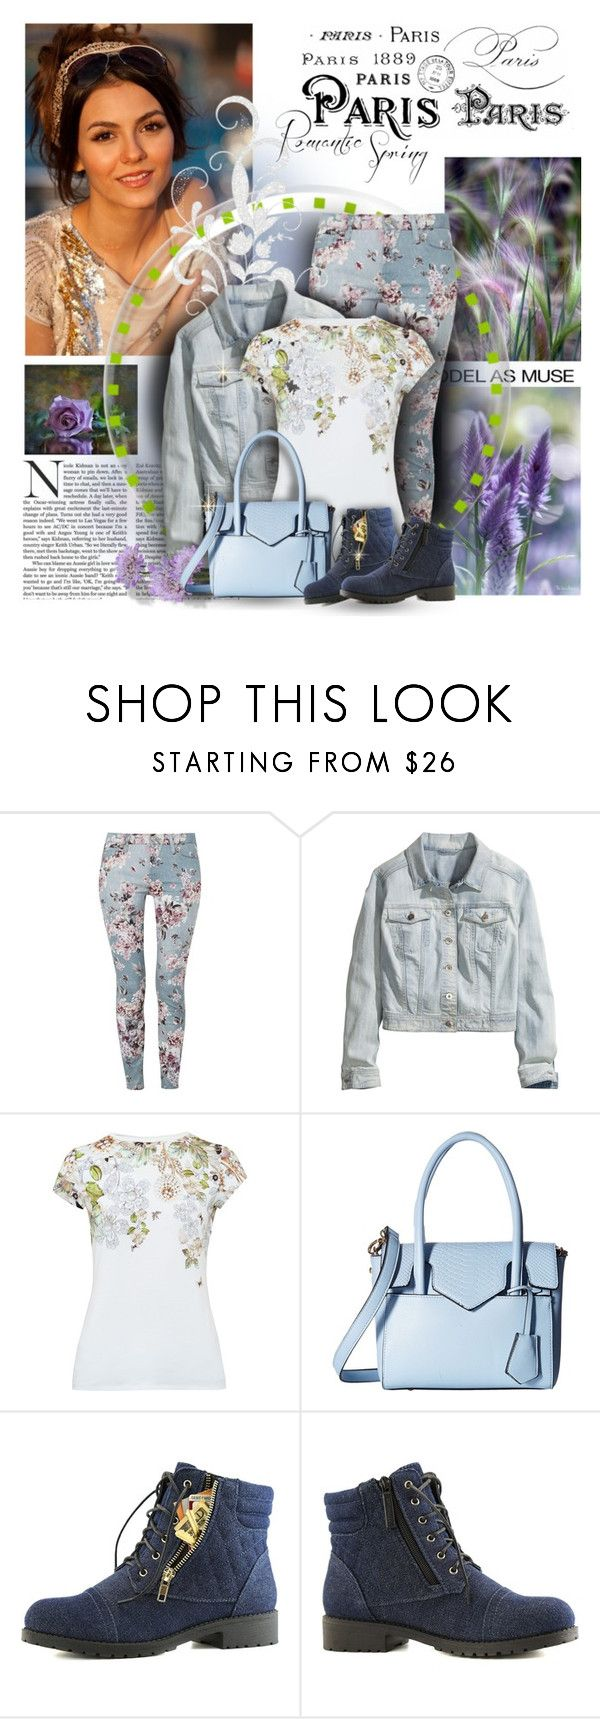 """#76-2017 ;-)"" by maison-de-forgeron ❤ liked on Polyvore featuring By Terry, 7 For All Mankind, Trilogy, H&M, Ted Baker, Gabriella Rocha and 40"